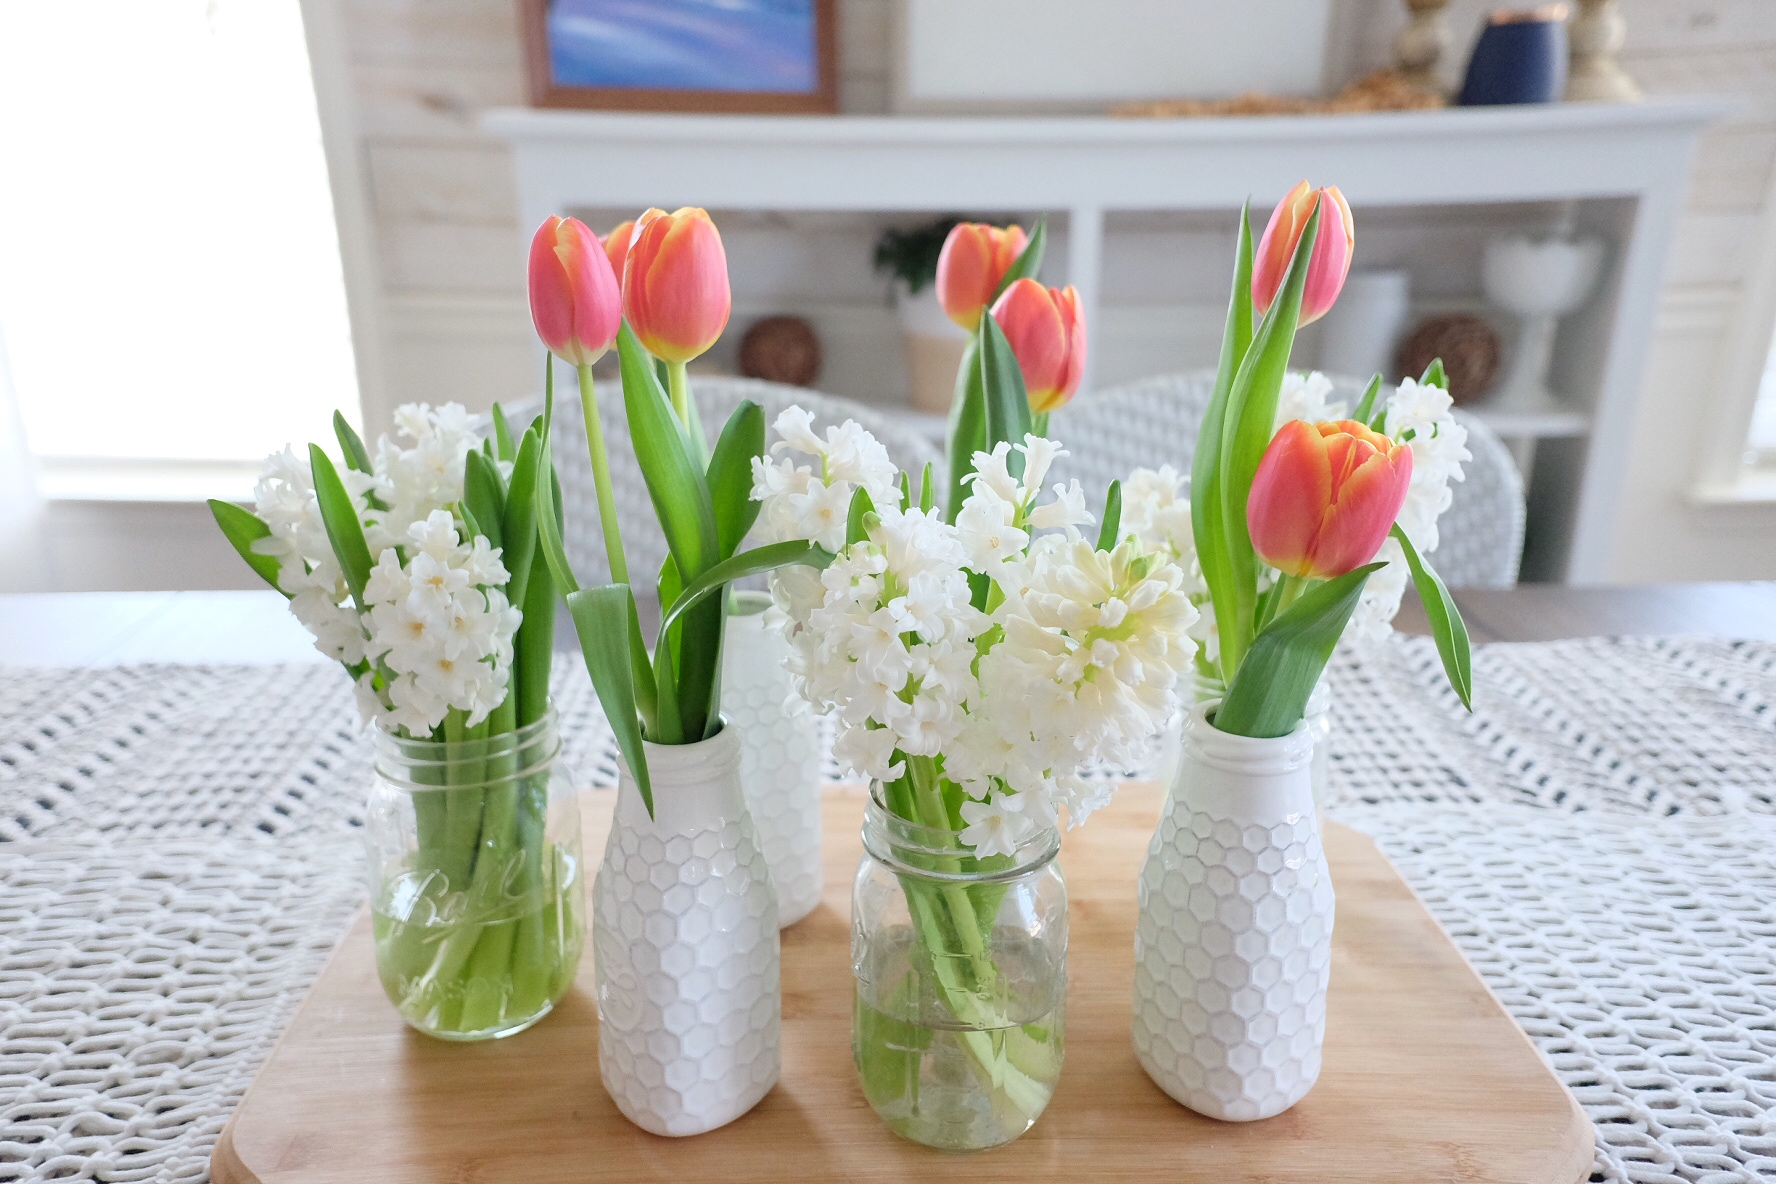 Tulips and Hyacinthus